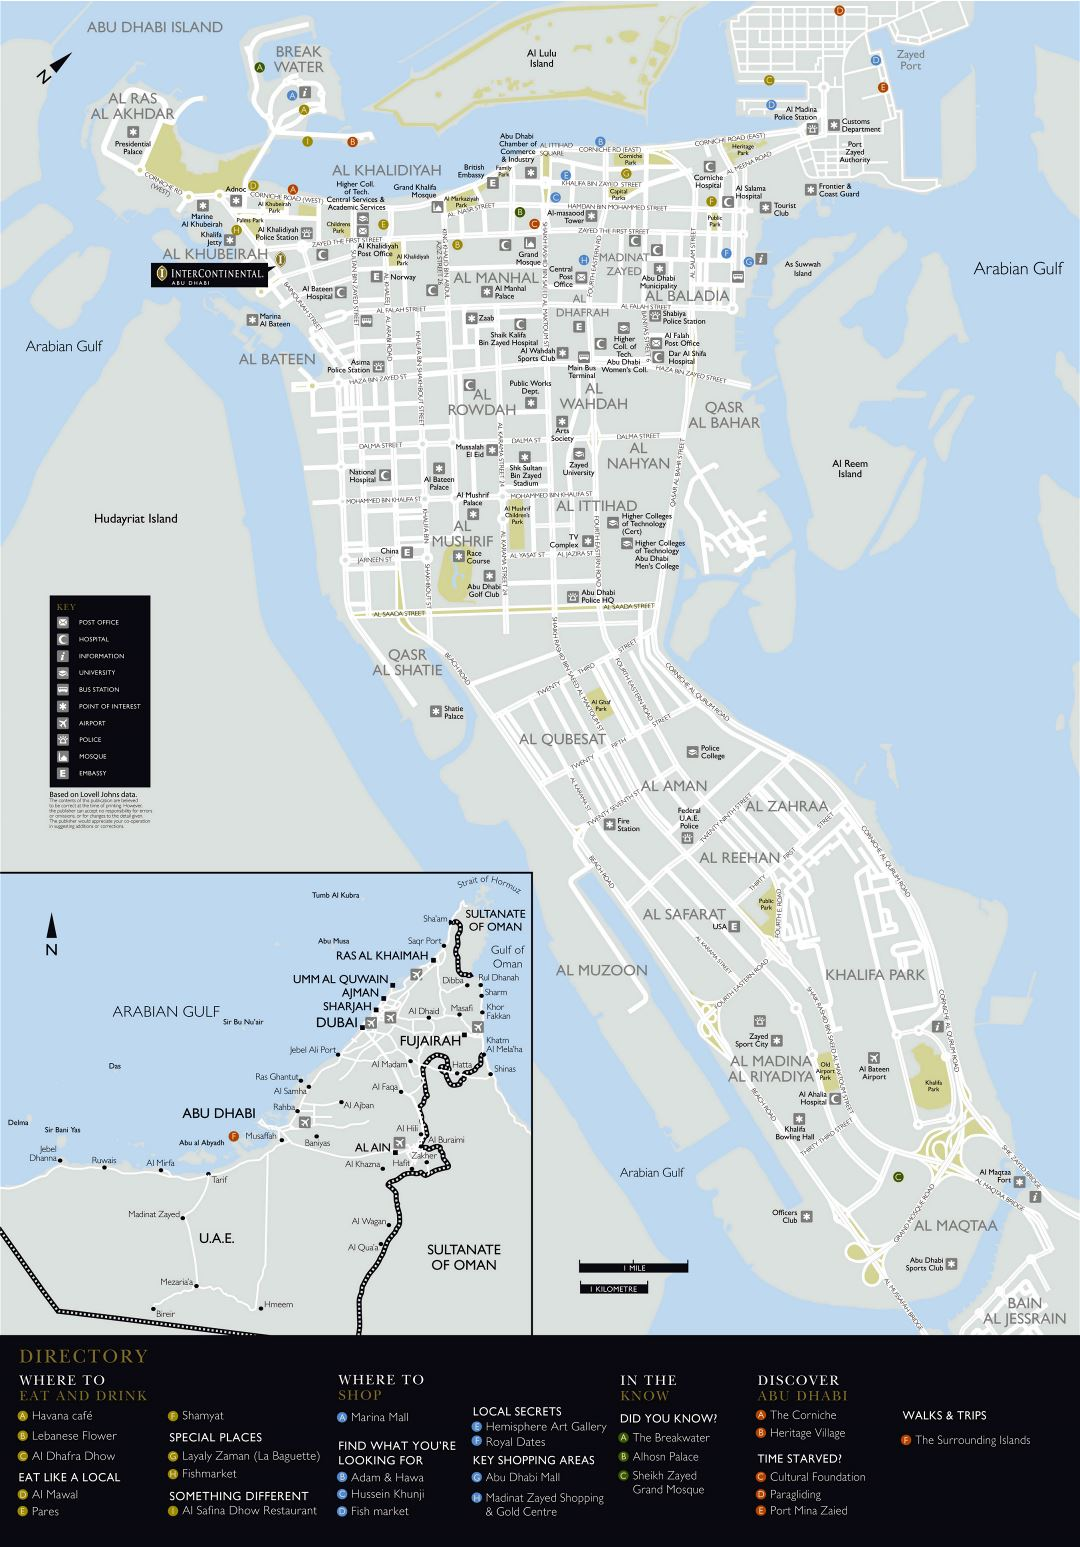 Large detailed road and tourist map of Abu Dhabi city